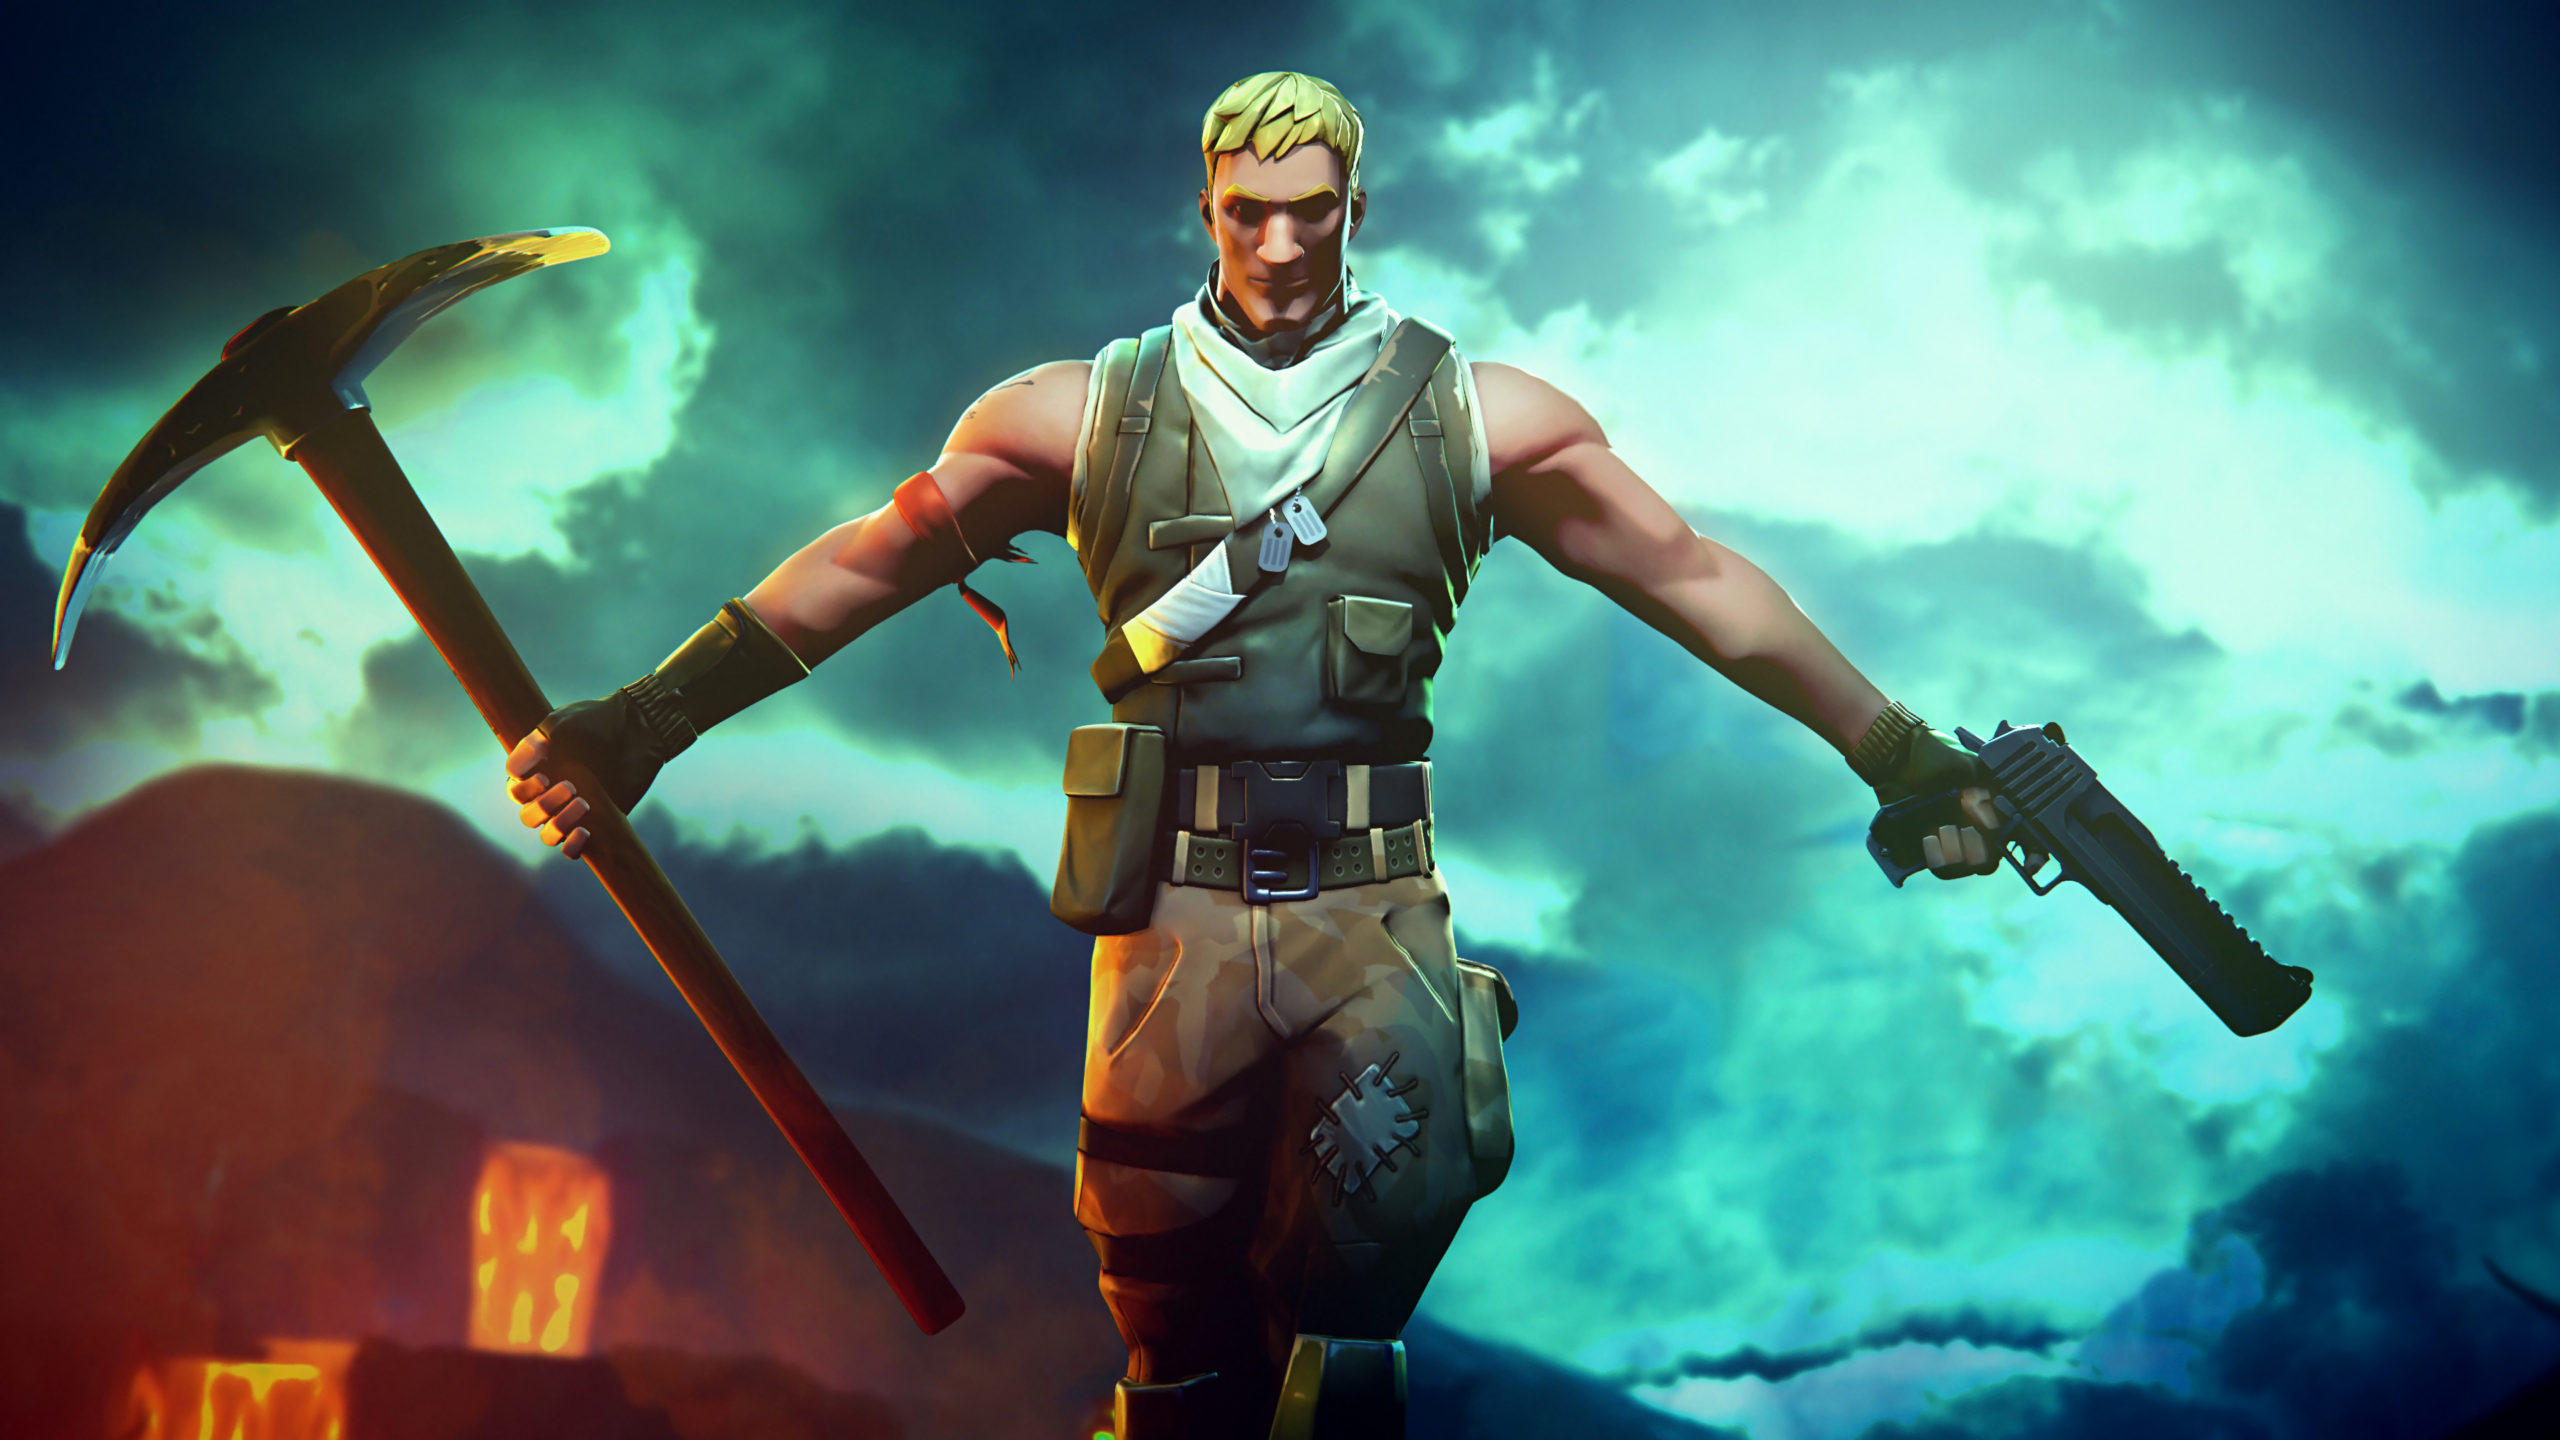 Free Download Fortnite Background Hd 4k 1080p Wallpapers Download The 2560x1440 For Your Desktop Mobile Tablet Explore 43 Fortnite 4k Hd Wallpapers Fortnite 4k Hd Wallpapers Fortnite Anime 4k